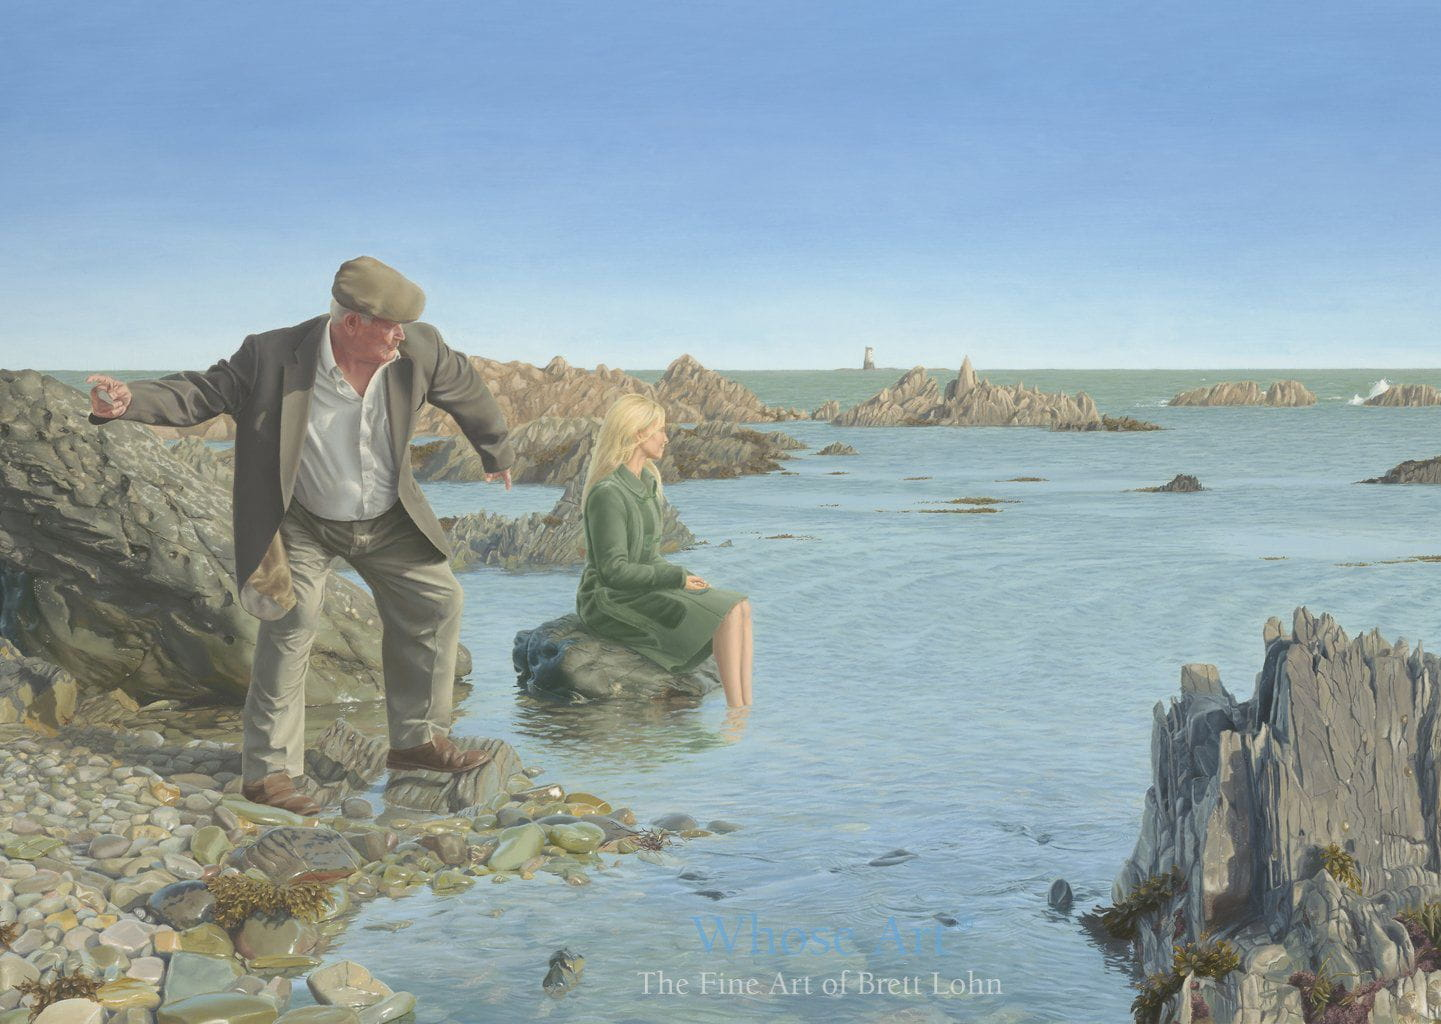 Greeting card of a painting of a retired man skimming stones across a shallow bay in Ireland. The card is blank inside